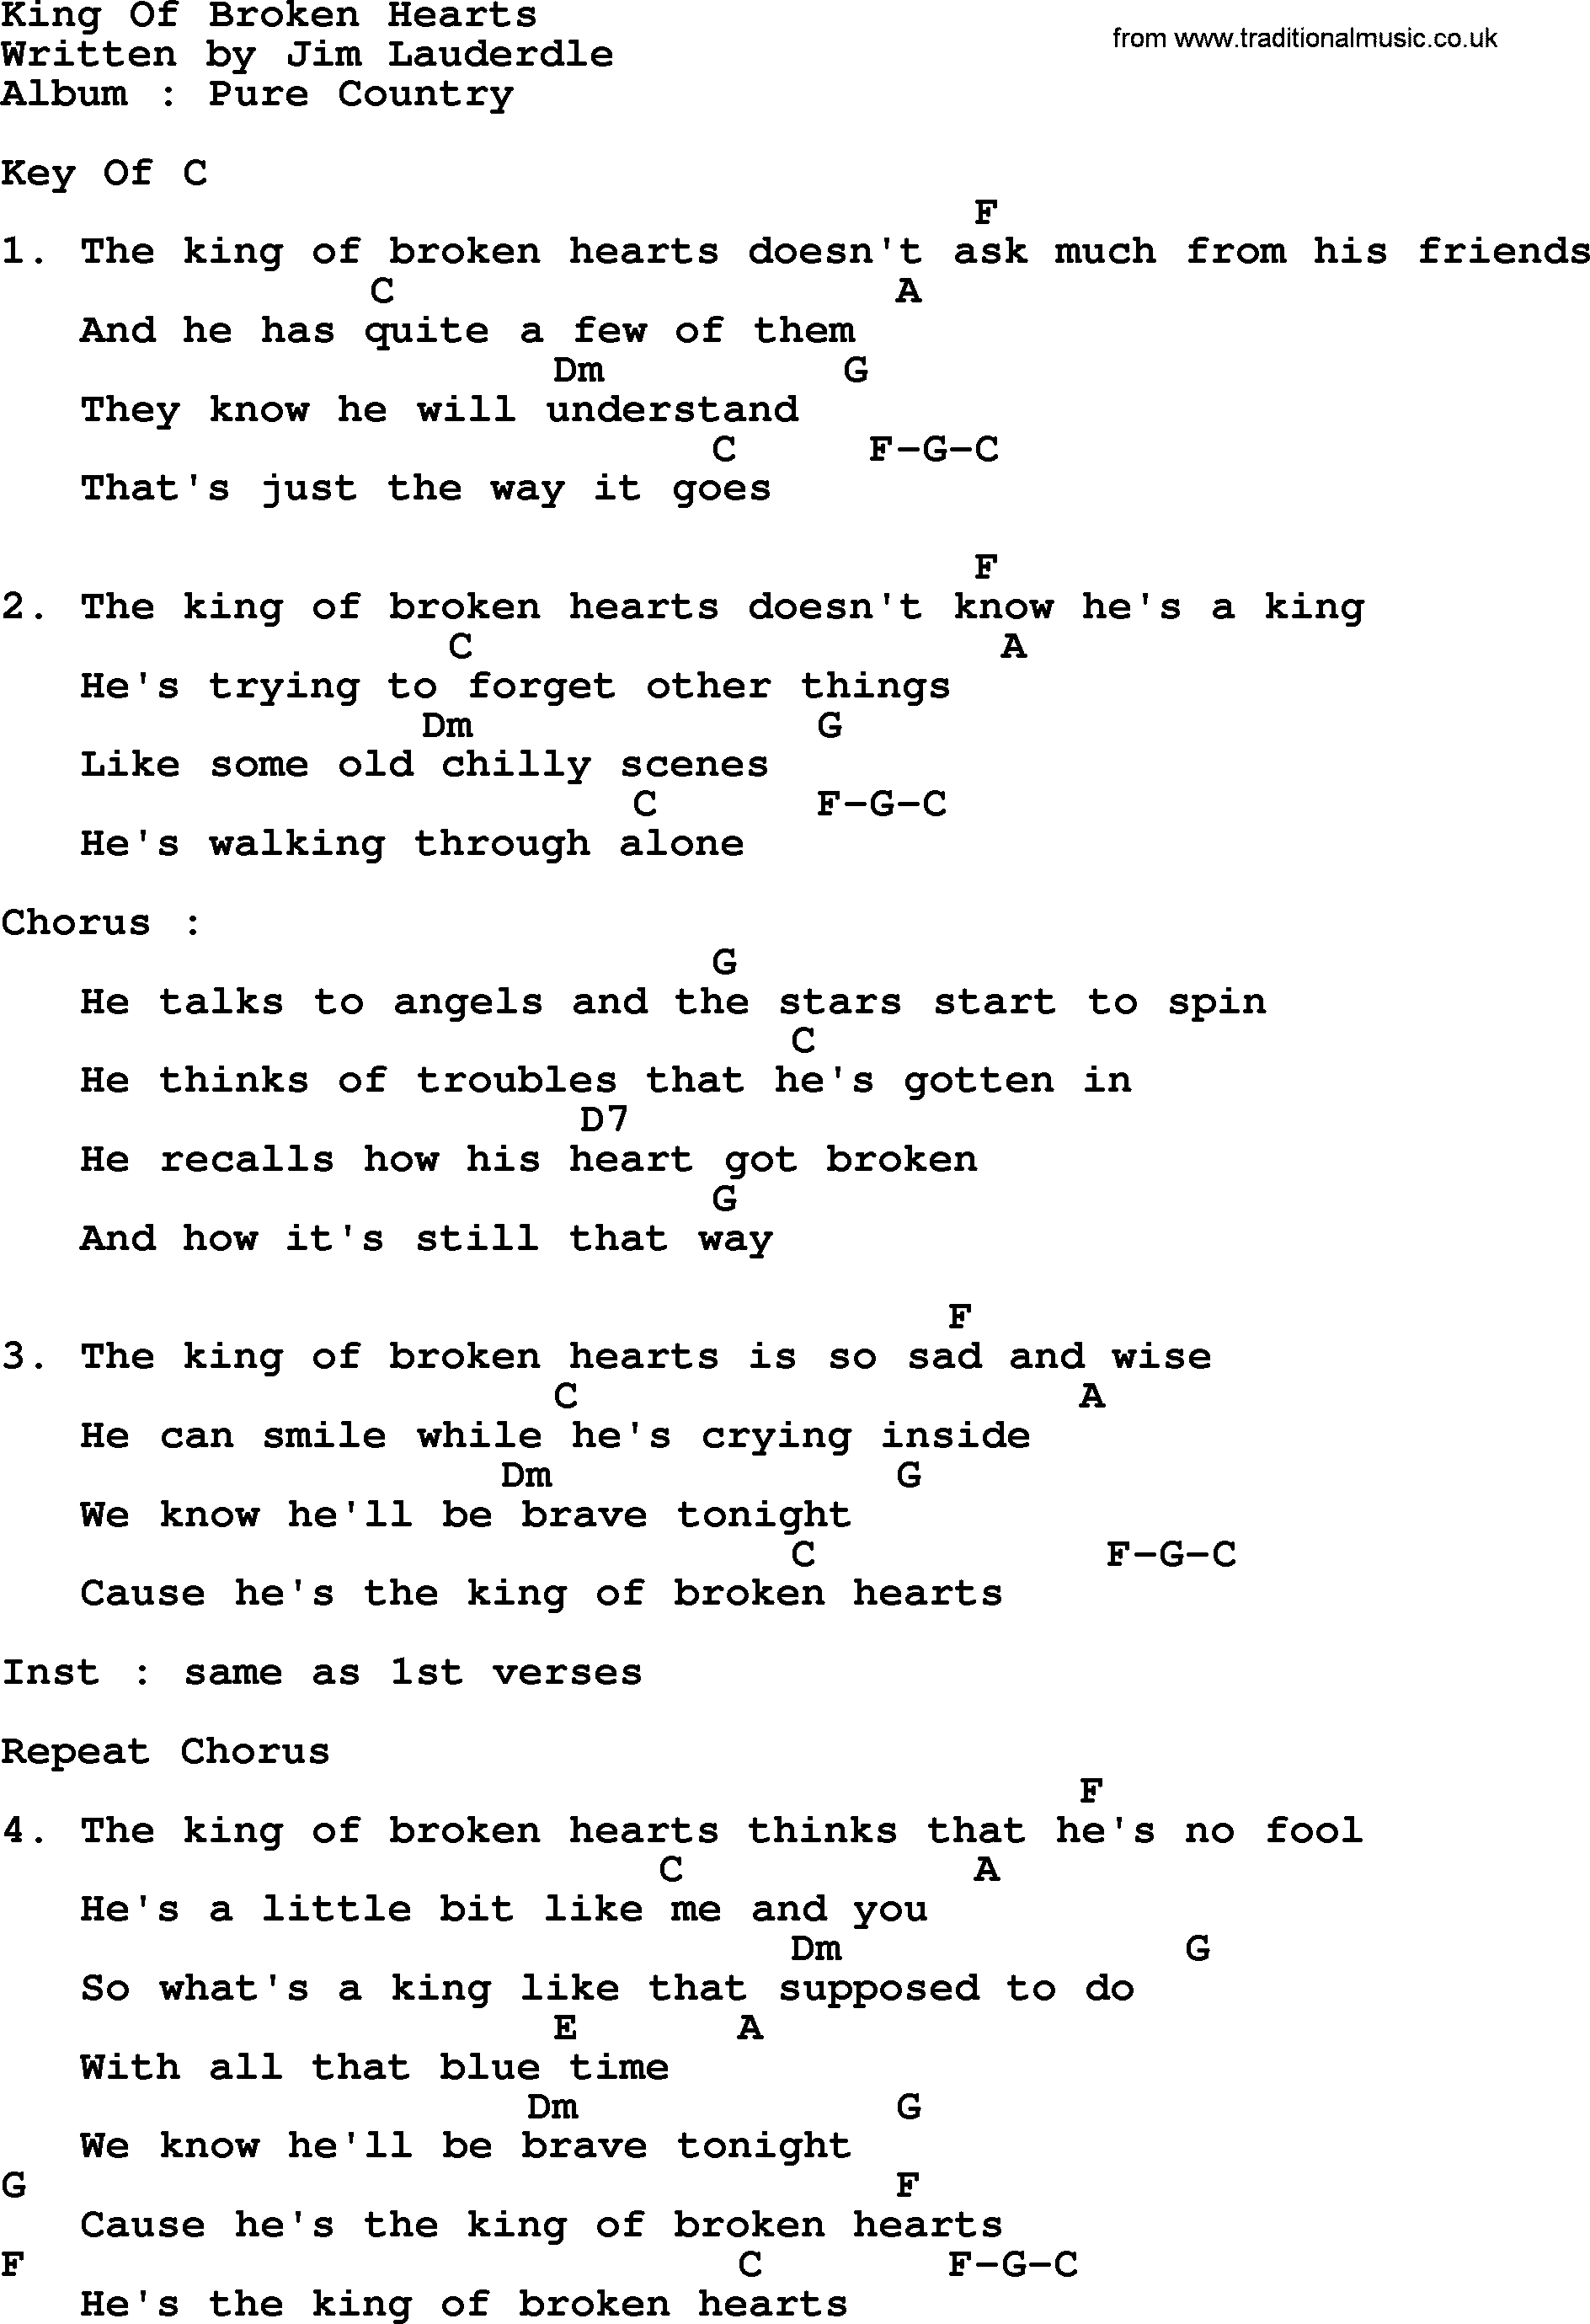 King Of Broken Hearts By George Strait Lyrics And Chords